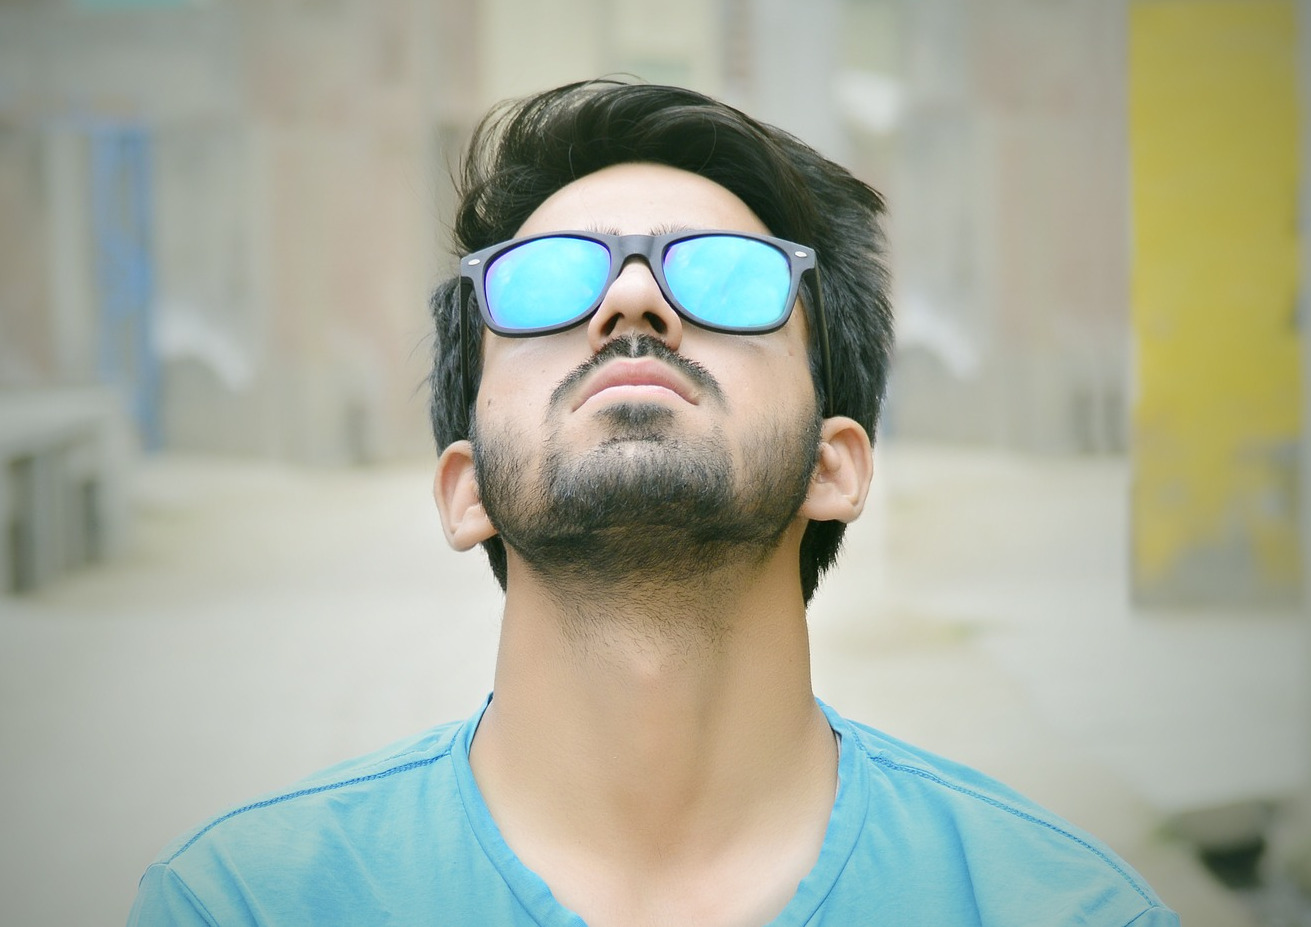 man-sunglasses-portrait-2.jpg